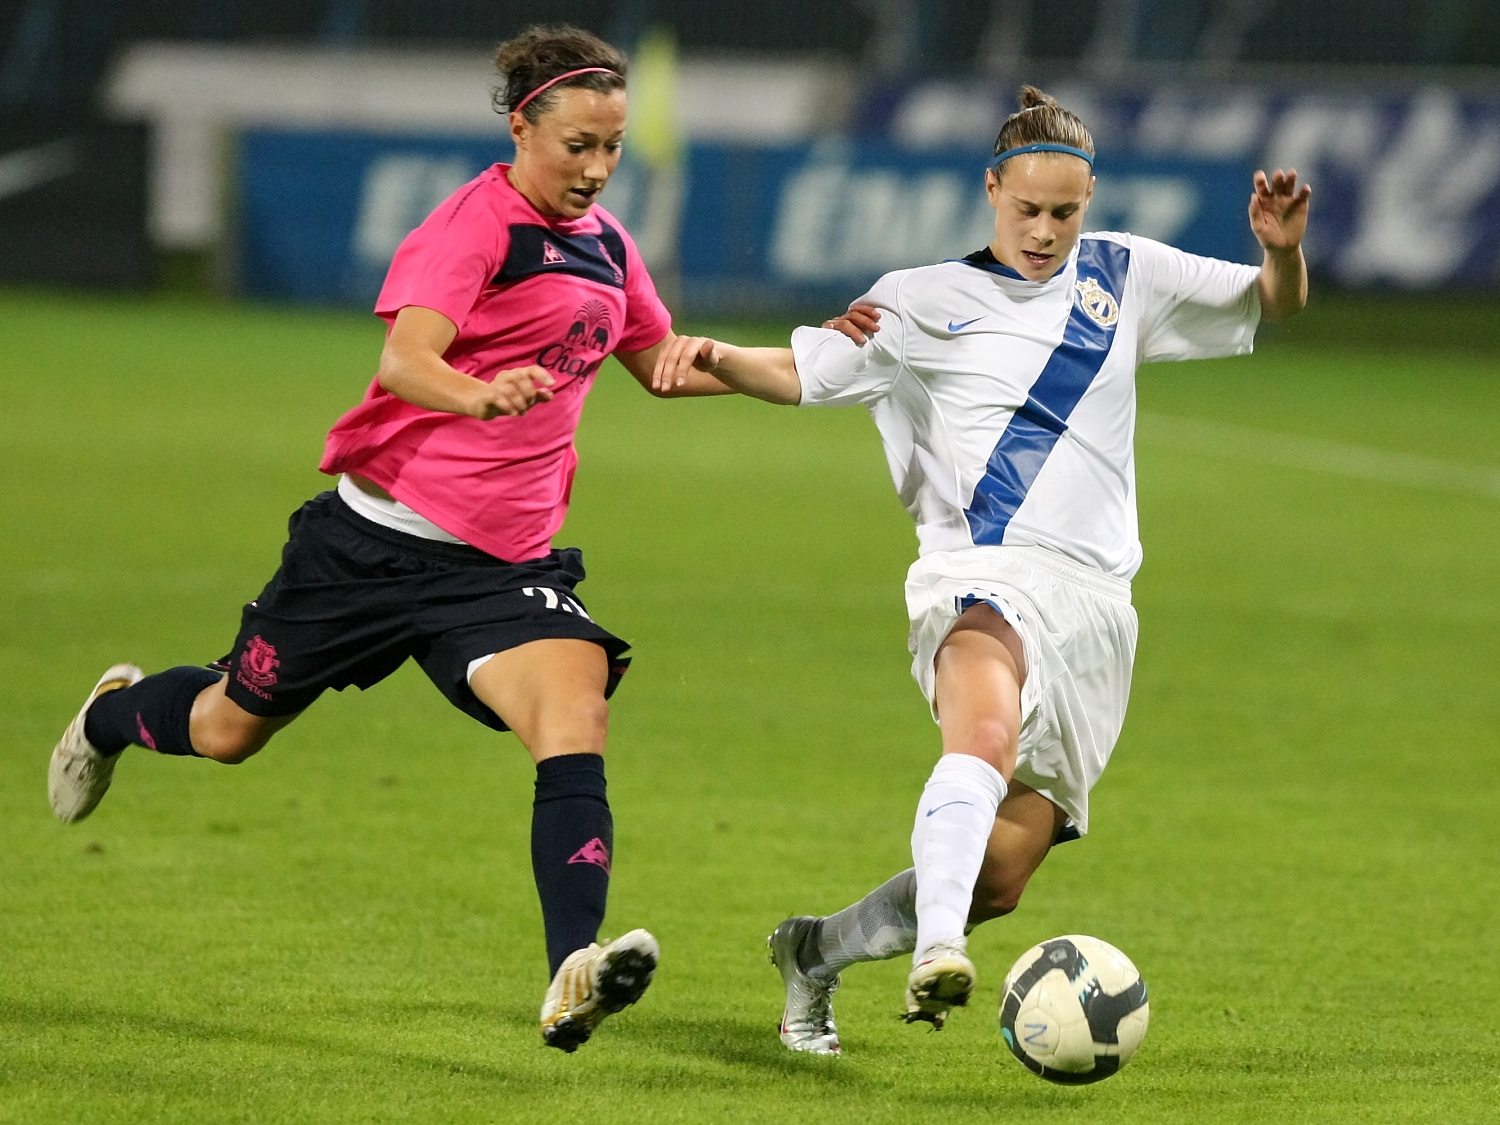 UEFA Womens's CL MTK Buapest-Everton Ladies